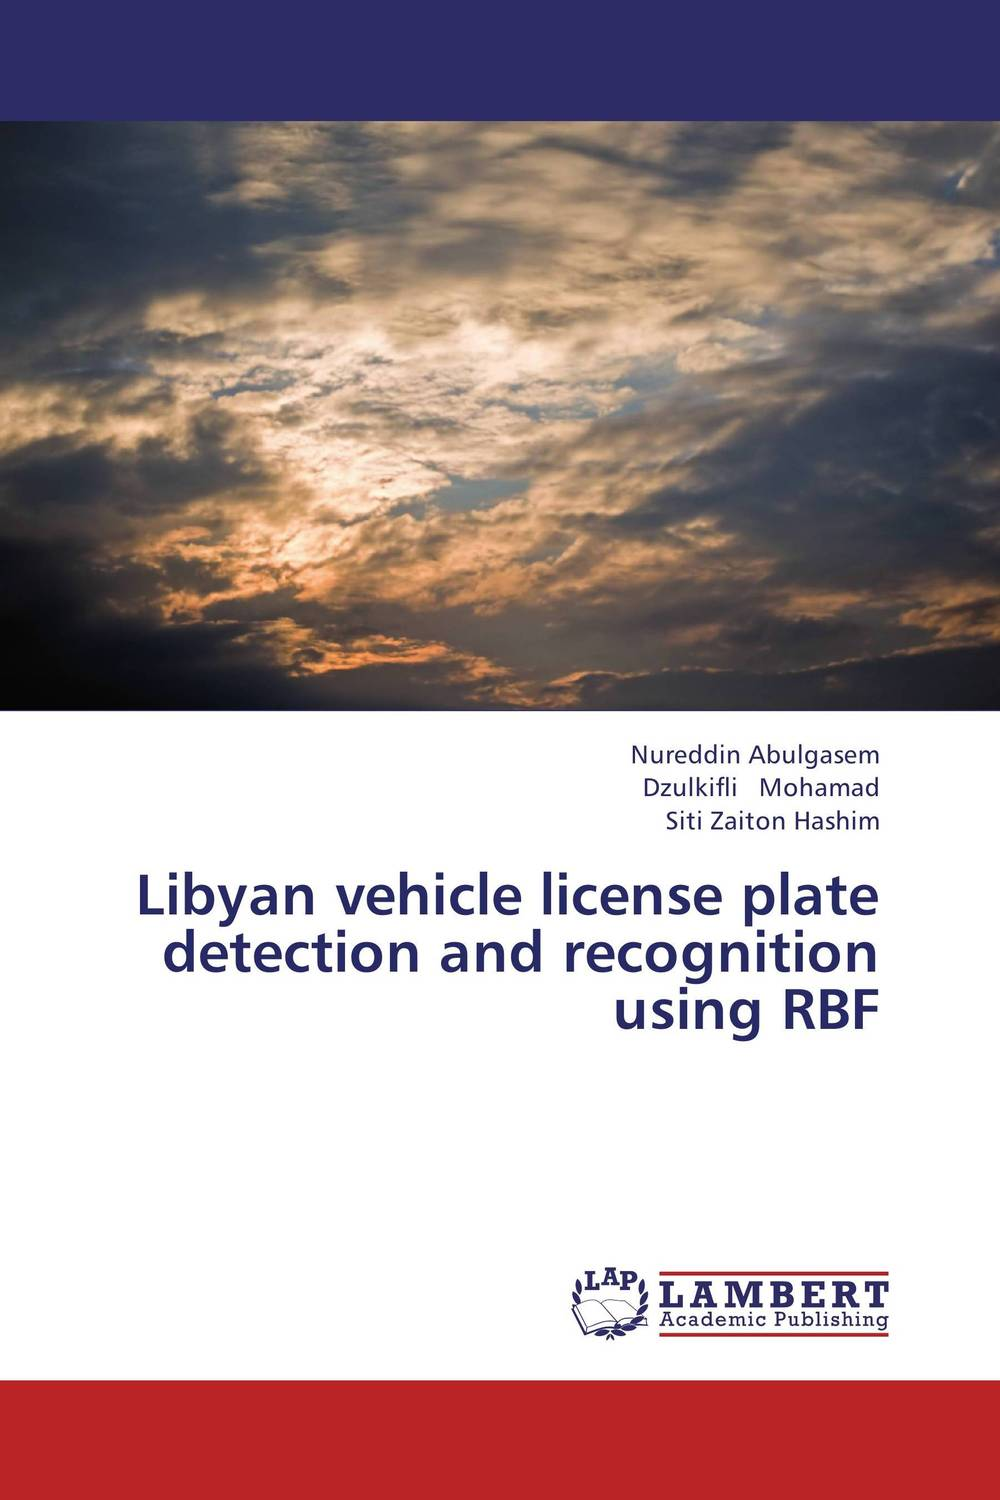 Libyan vehicle license plate detection and recognition using RBF web spam detection application using neural network